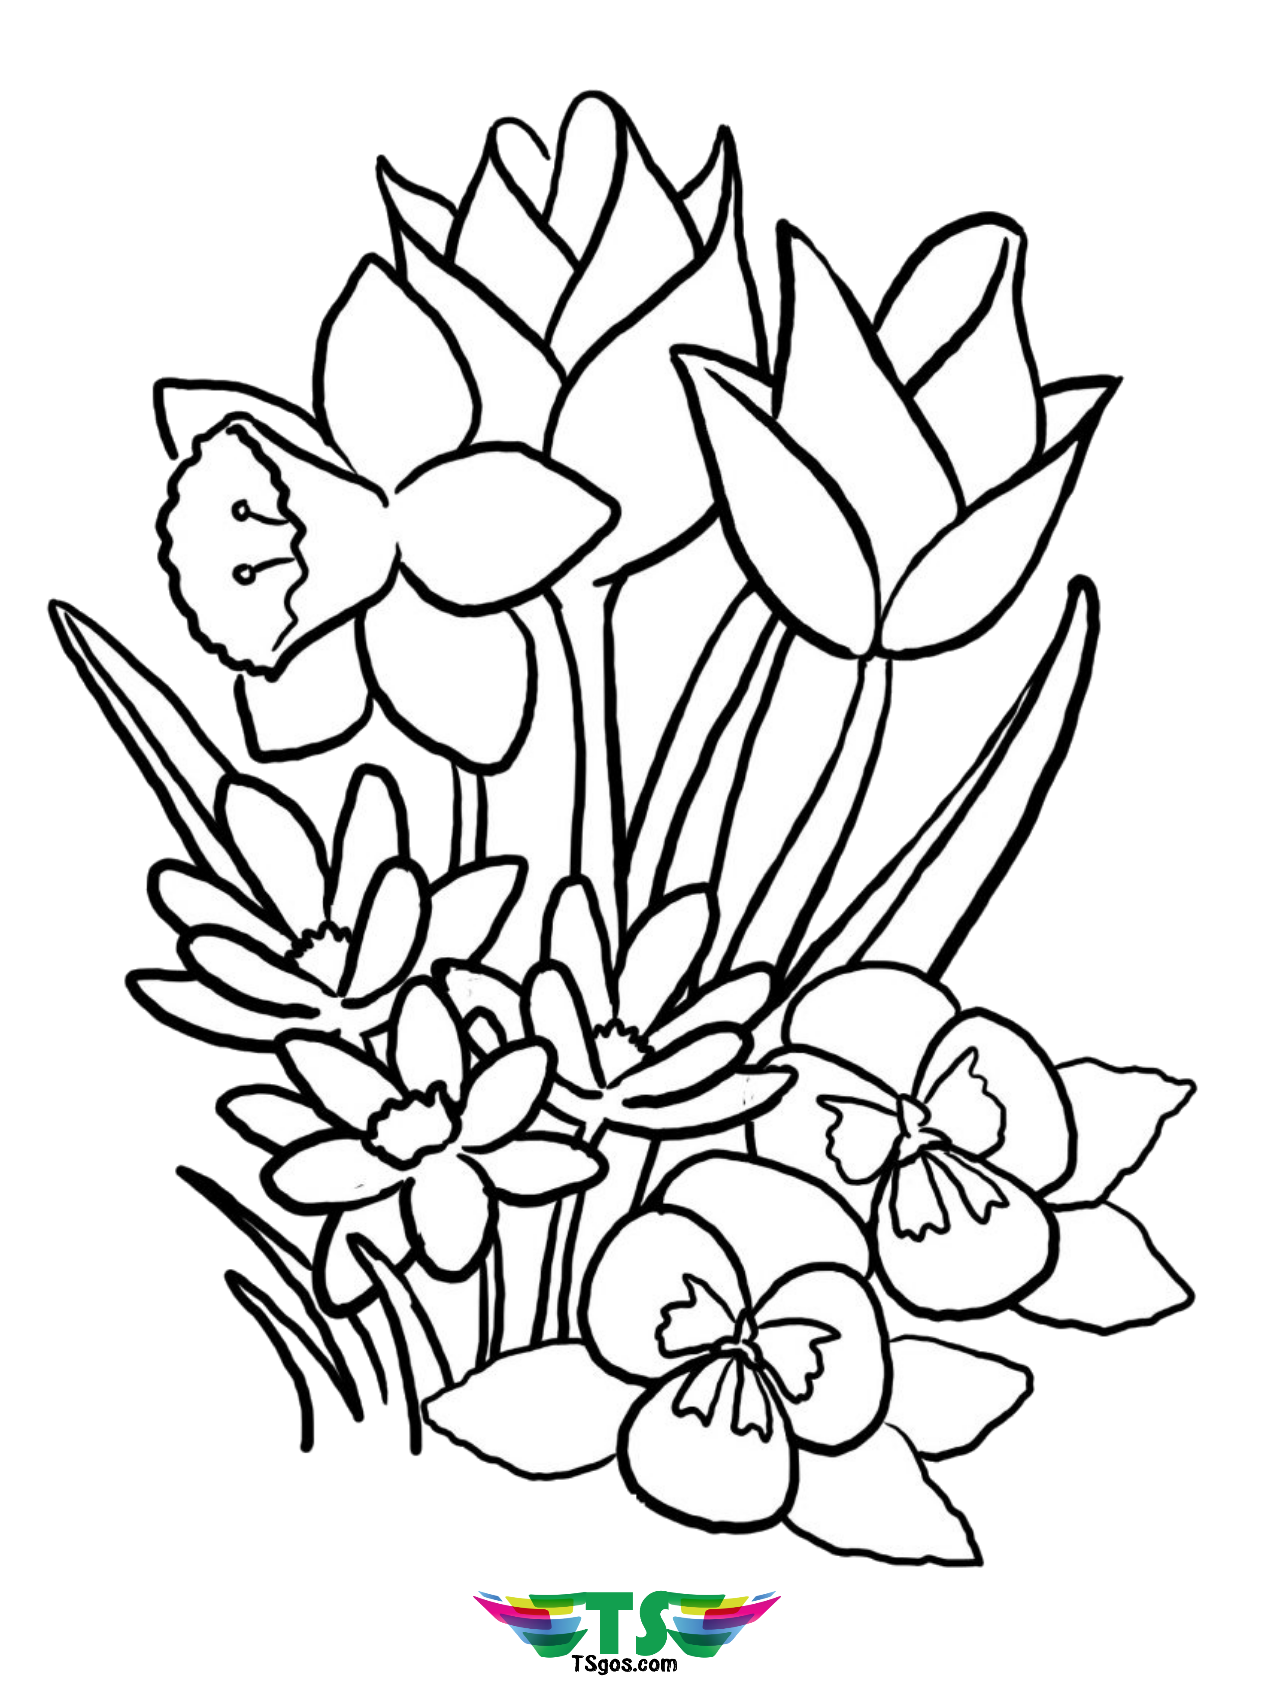 spring coloring pages for kids spring drawing at getdrawings free download for kids coloring spring pages